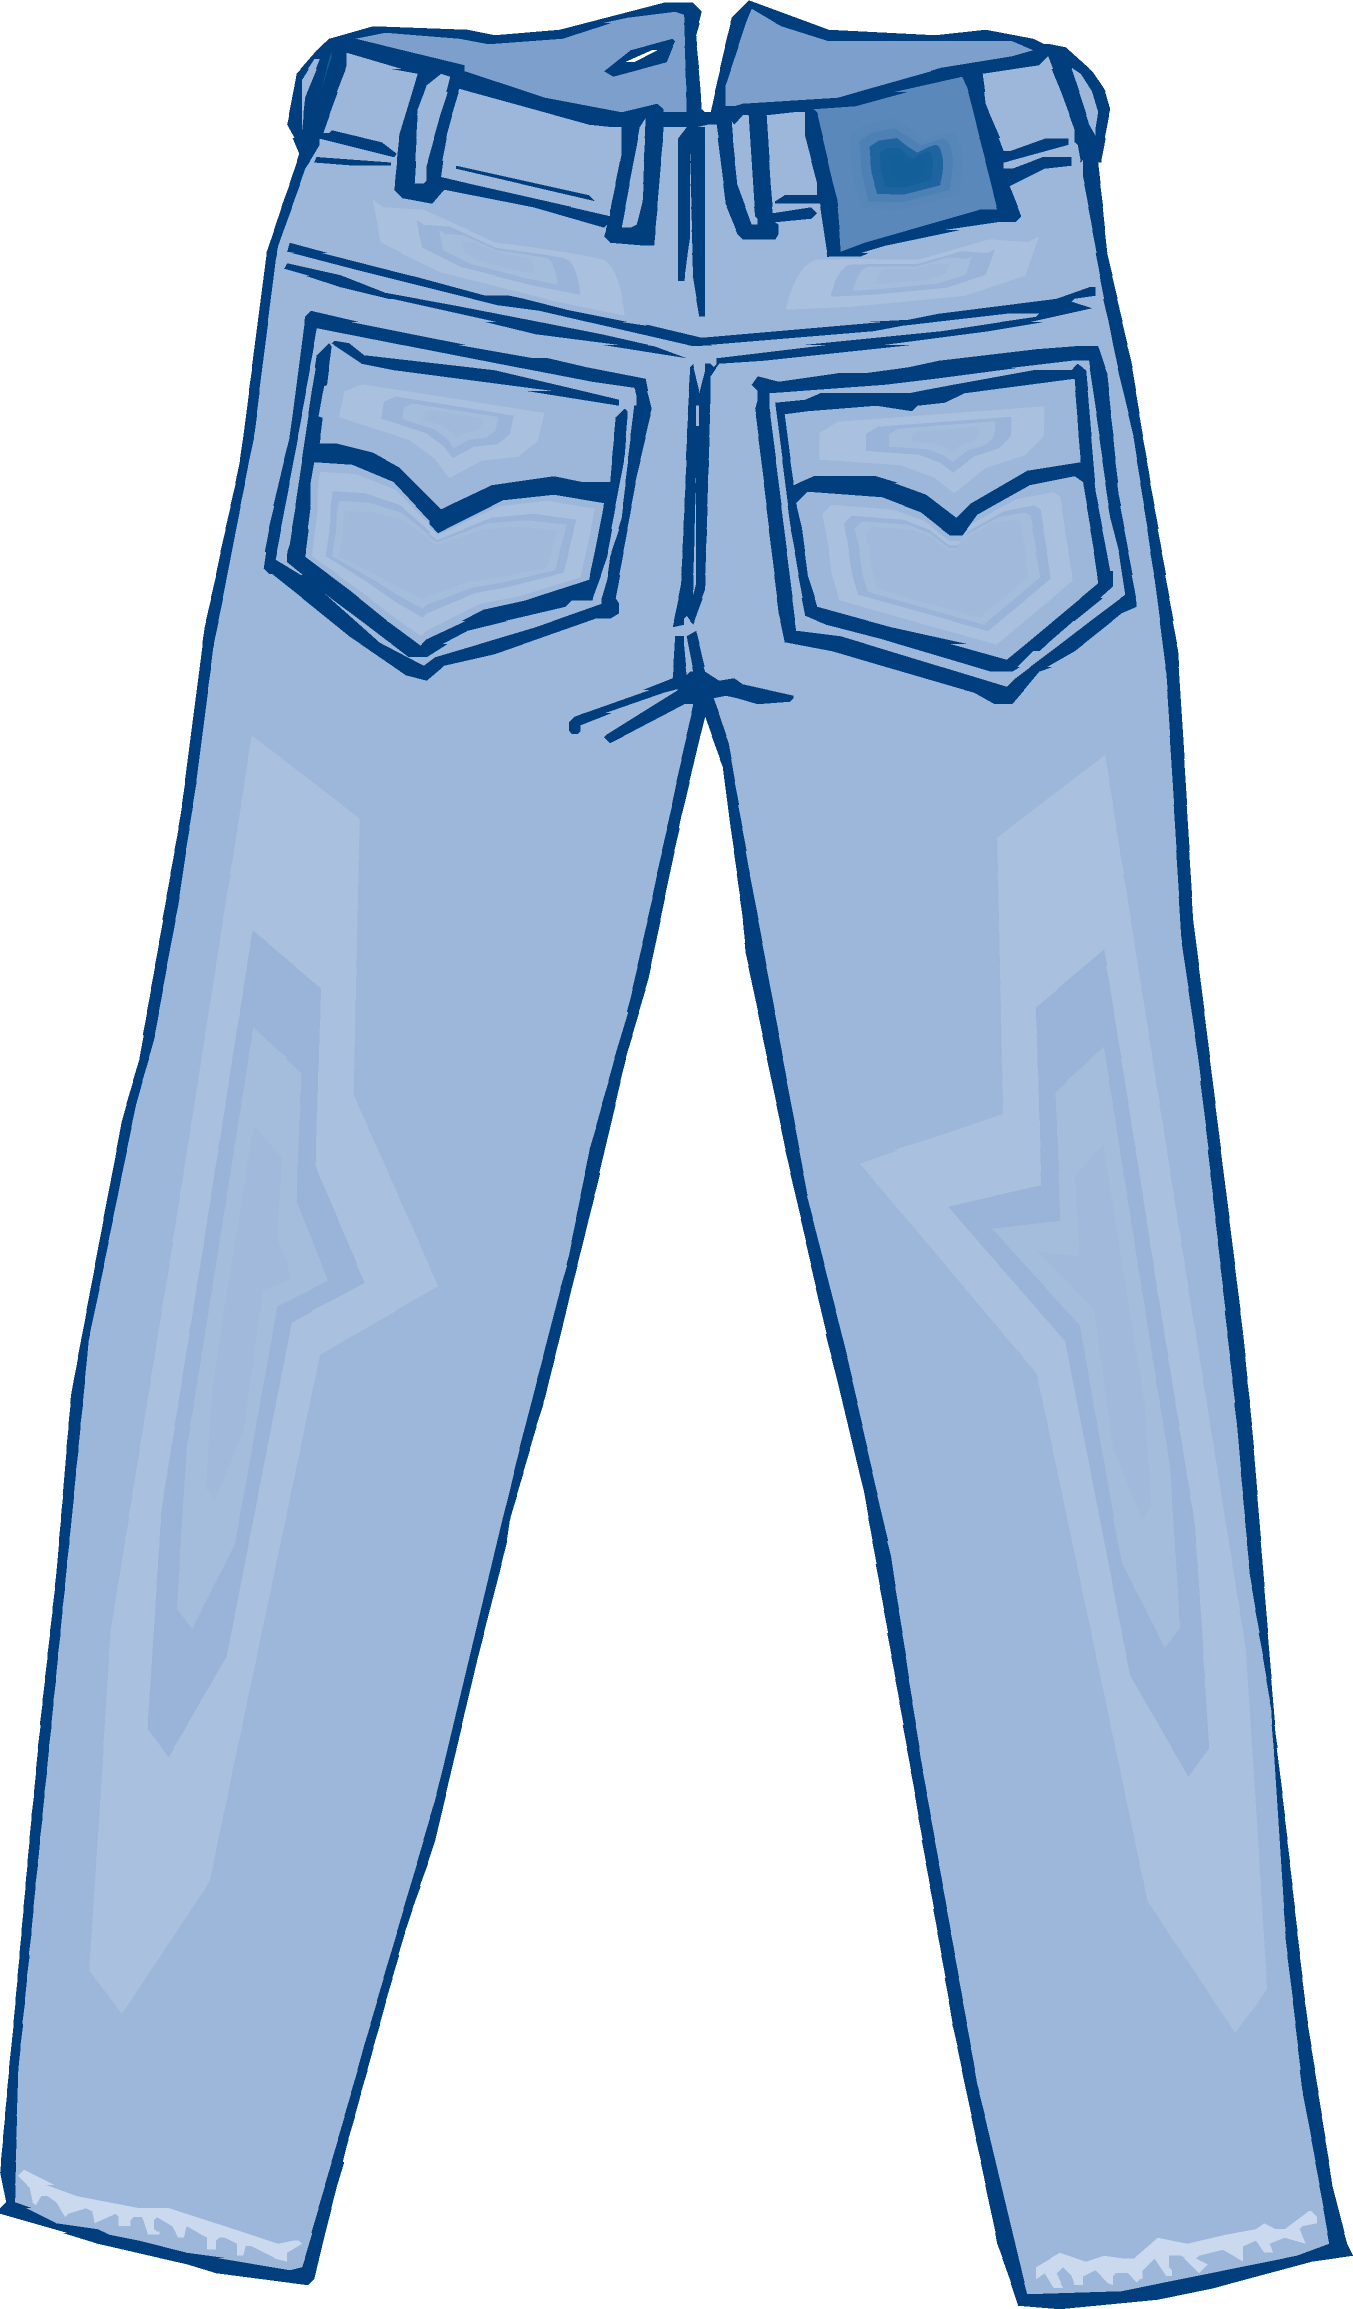 graphic free download Jeans clipart. Free cliparts download clip.